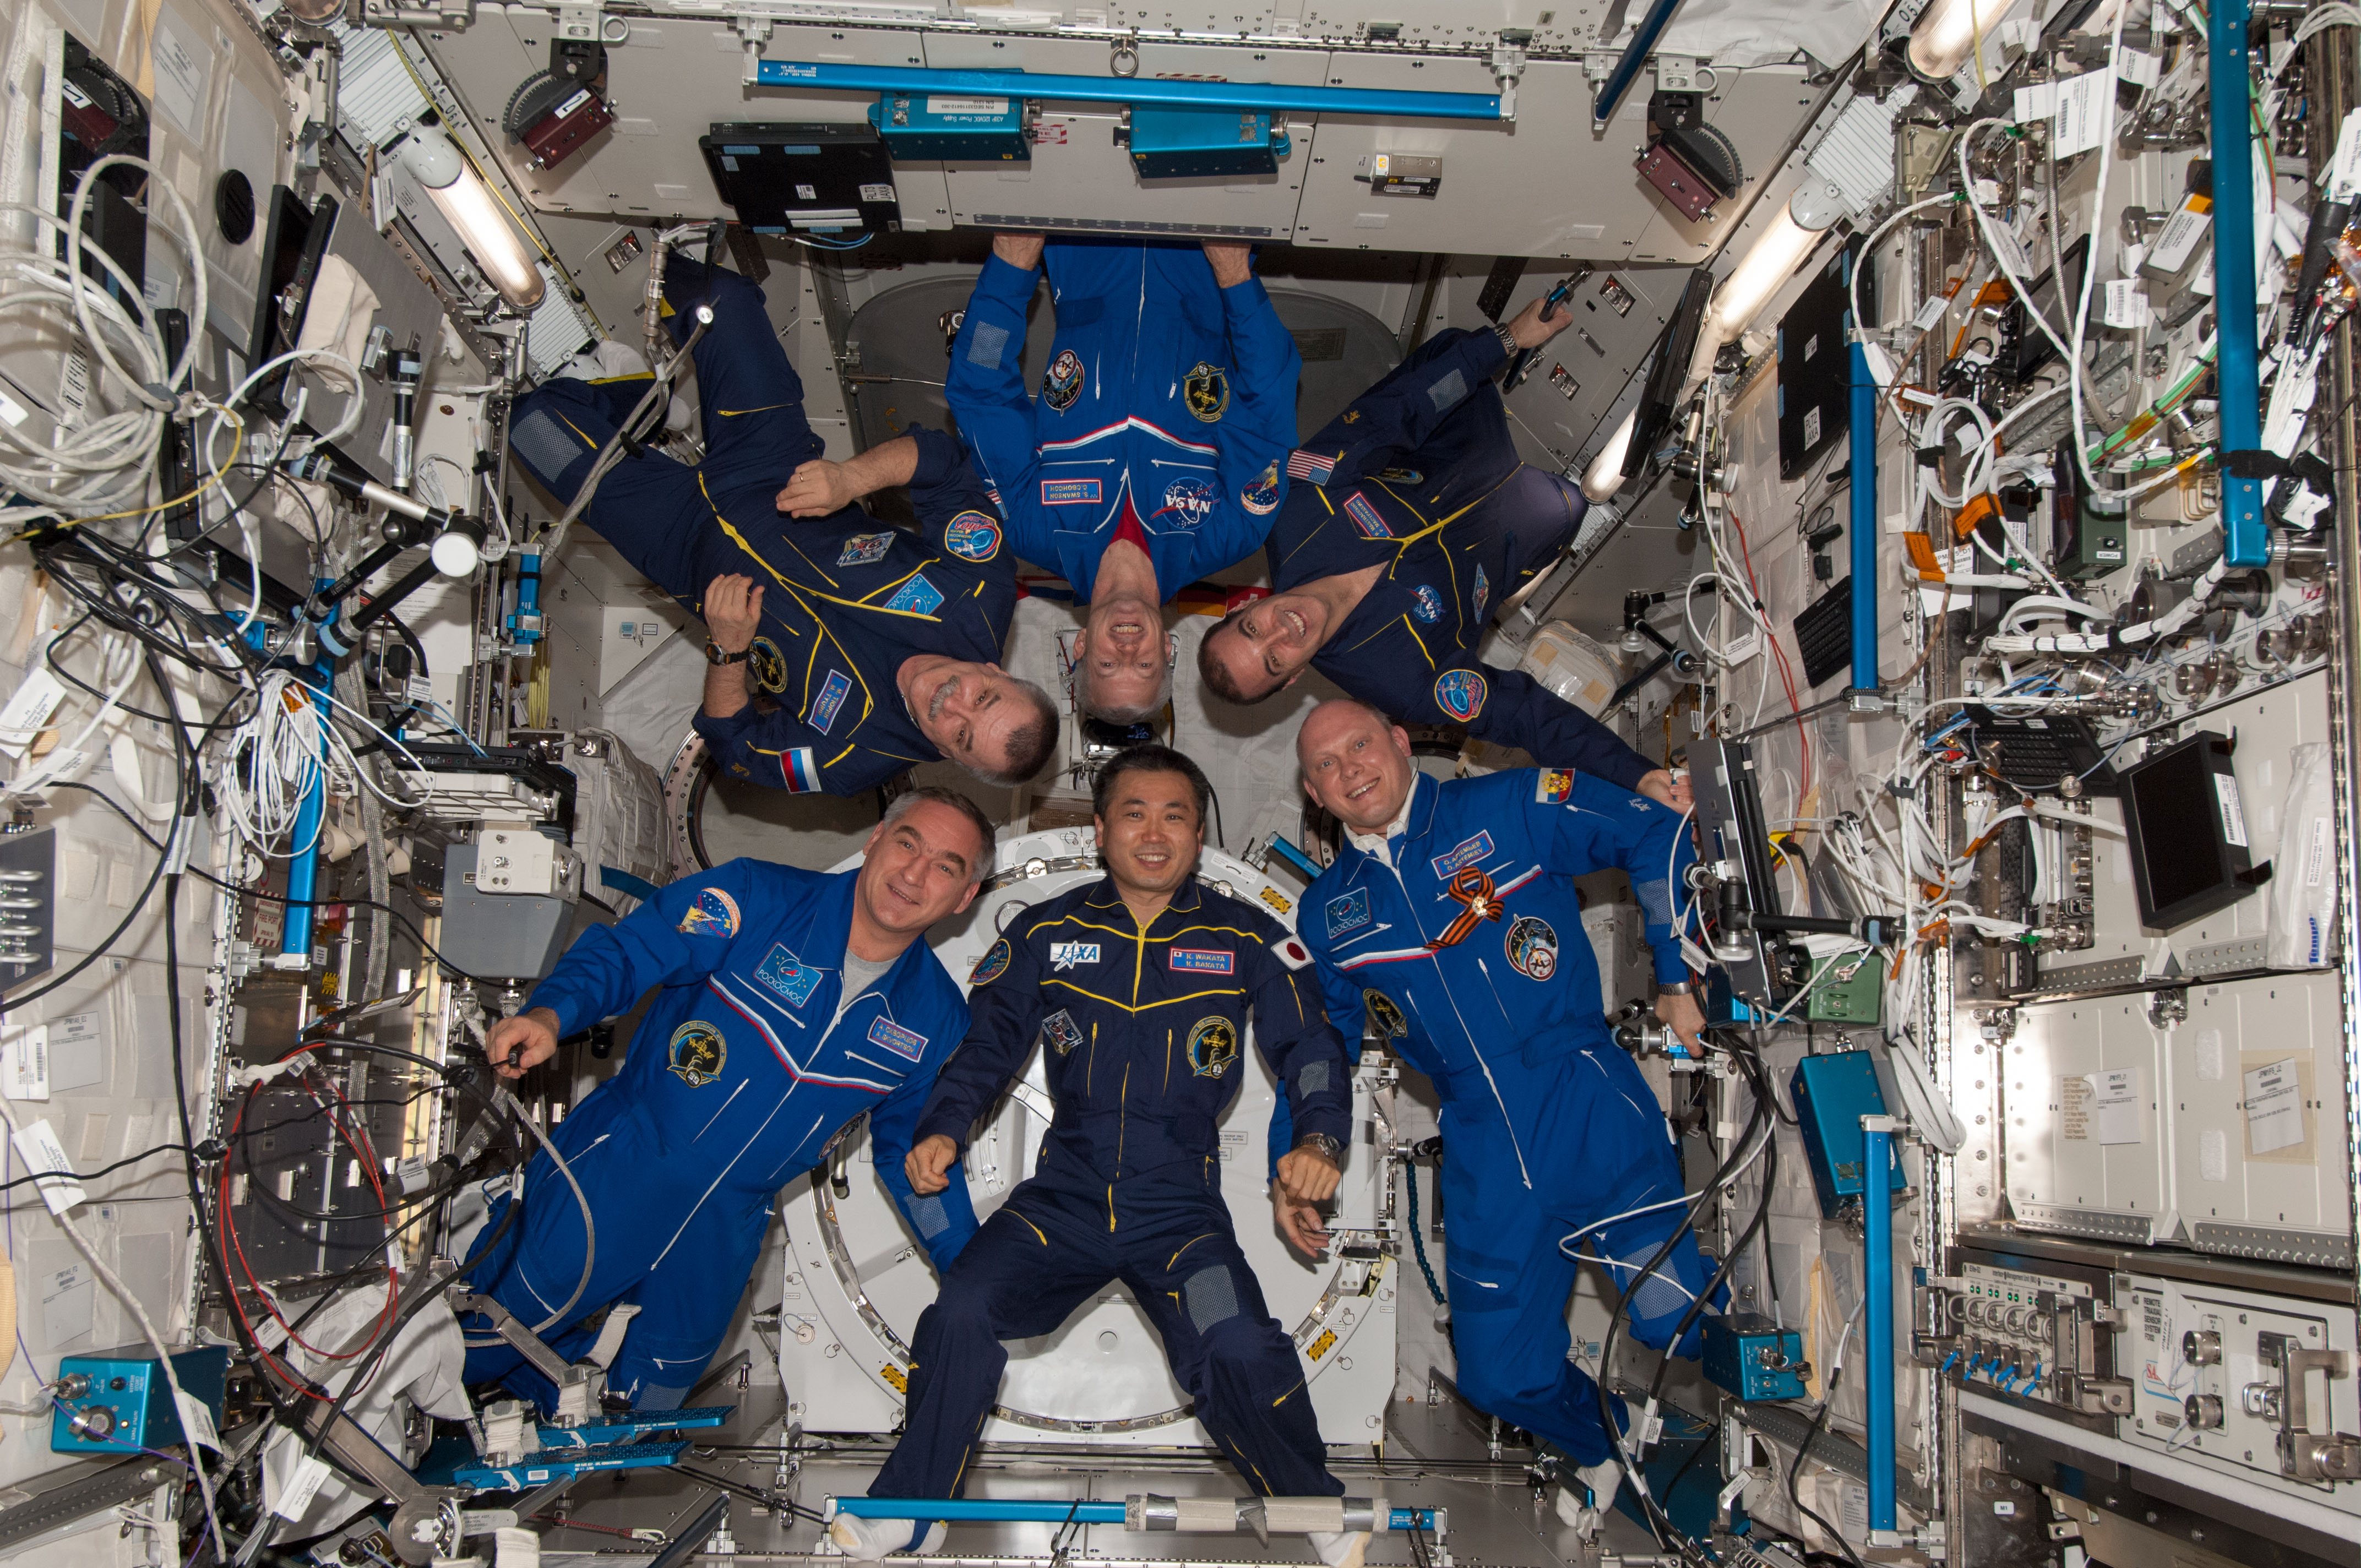 stations expedition 39 crew poses for portrait nasa